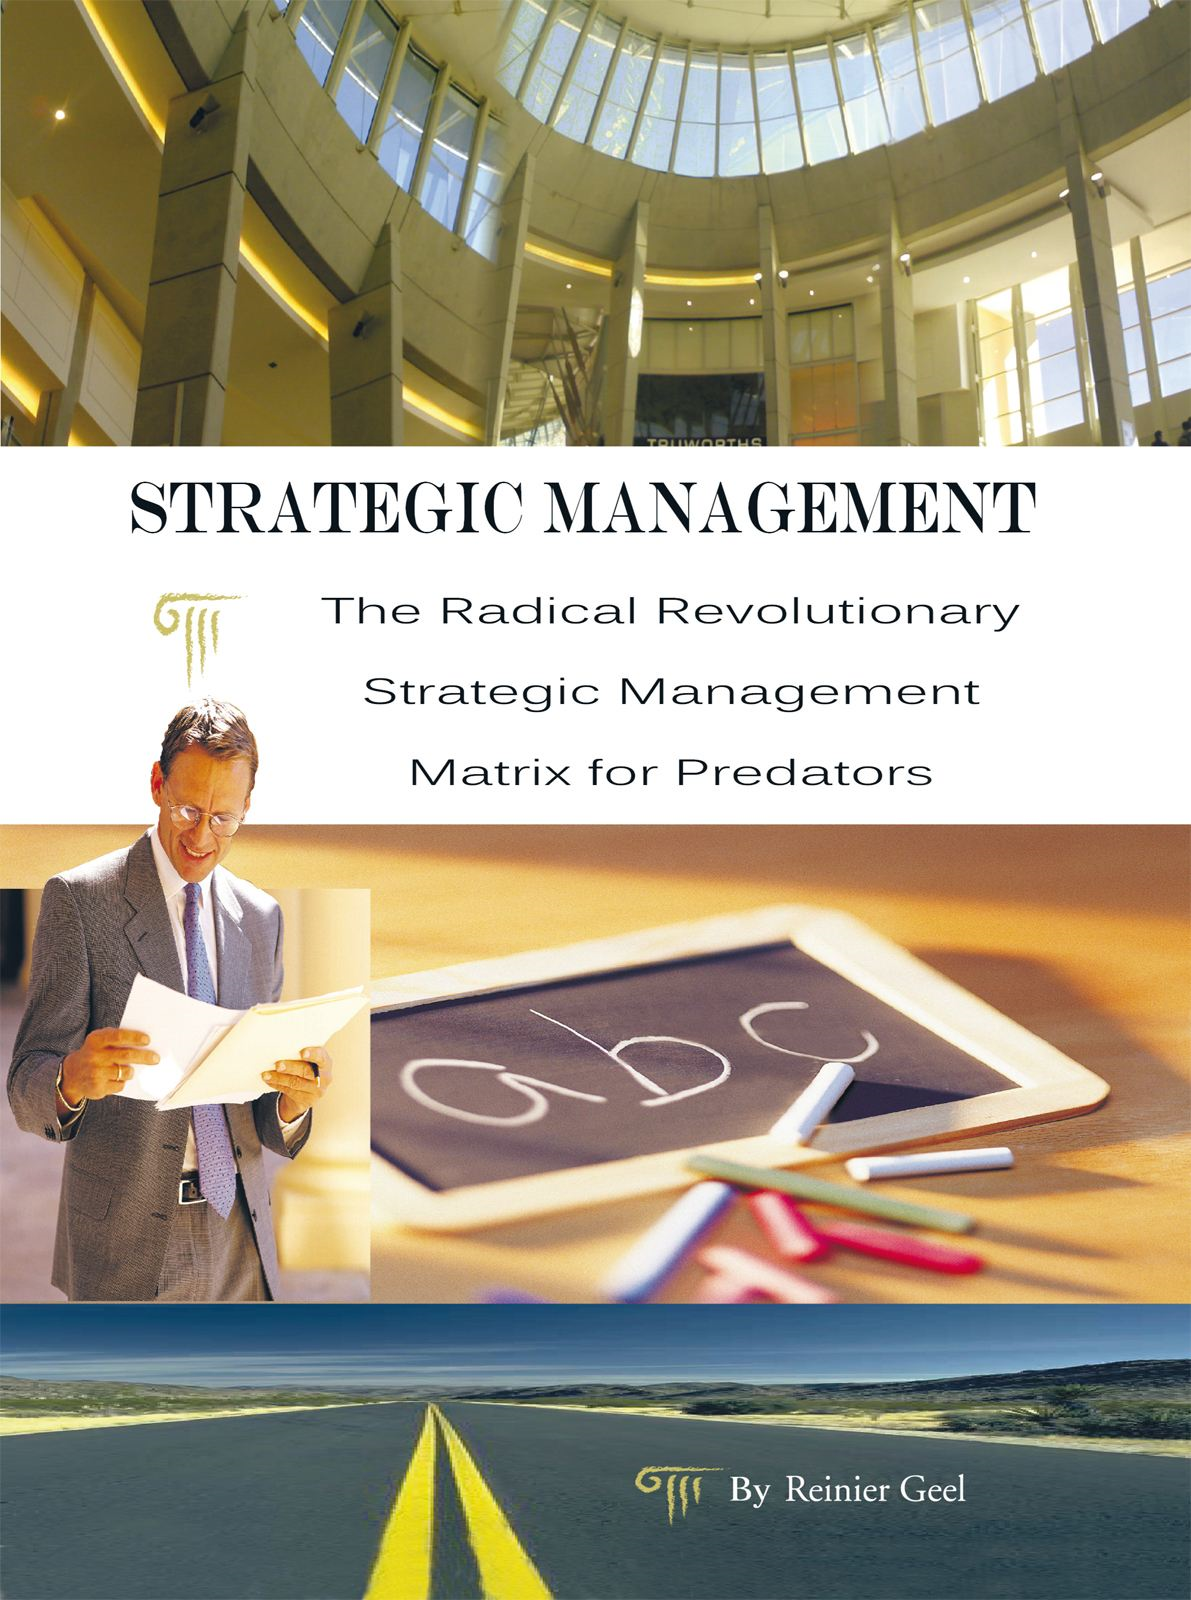 Strategic Management By: Reinier Geel